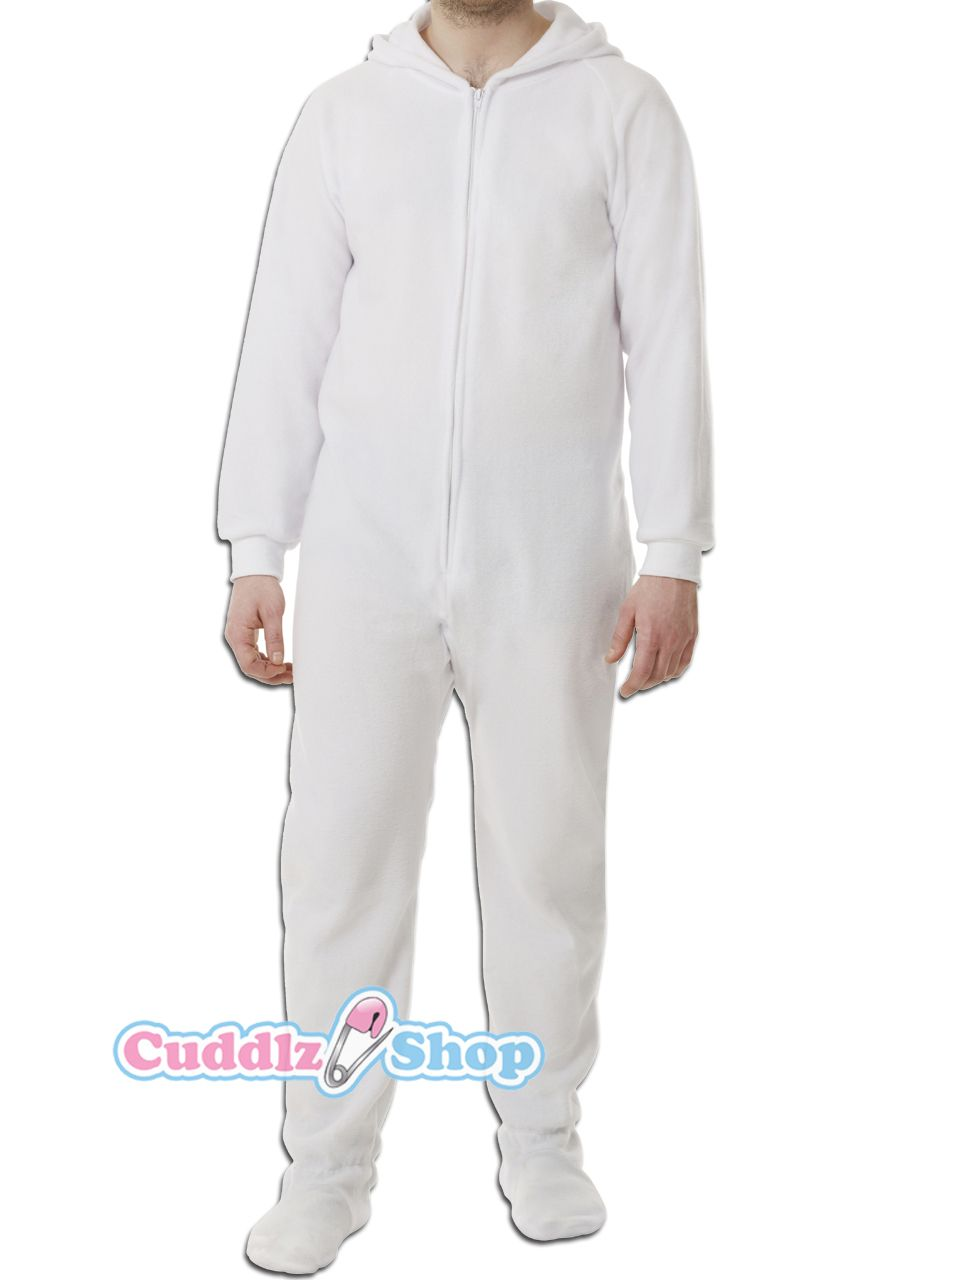 6e67f1da2af White onesie for adults with feet adult baby footed sleeper abdl onesies  with feet - Cuddlz.com